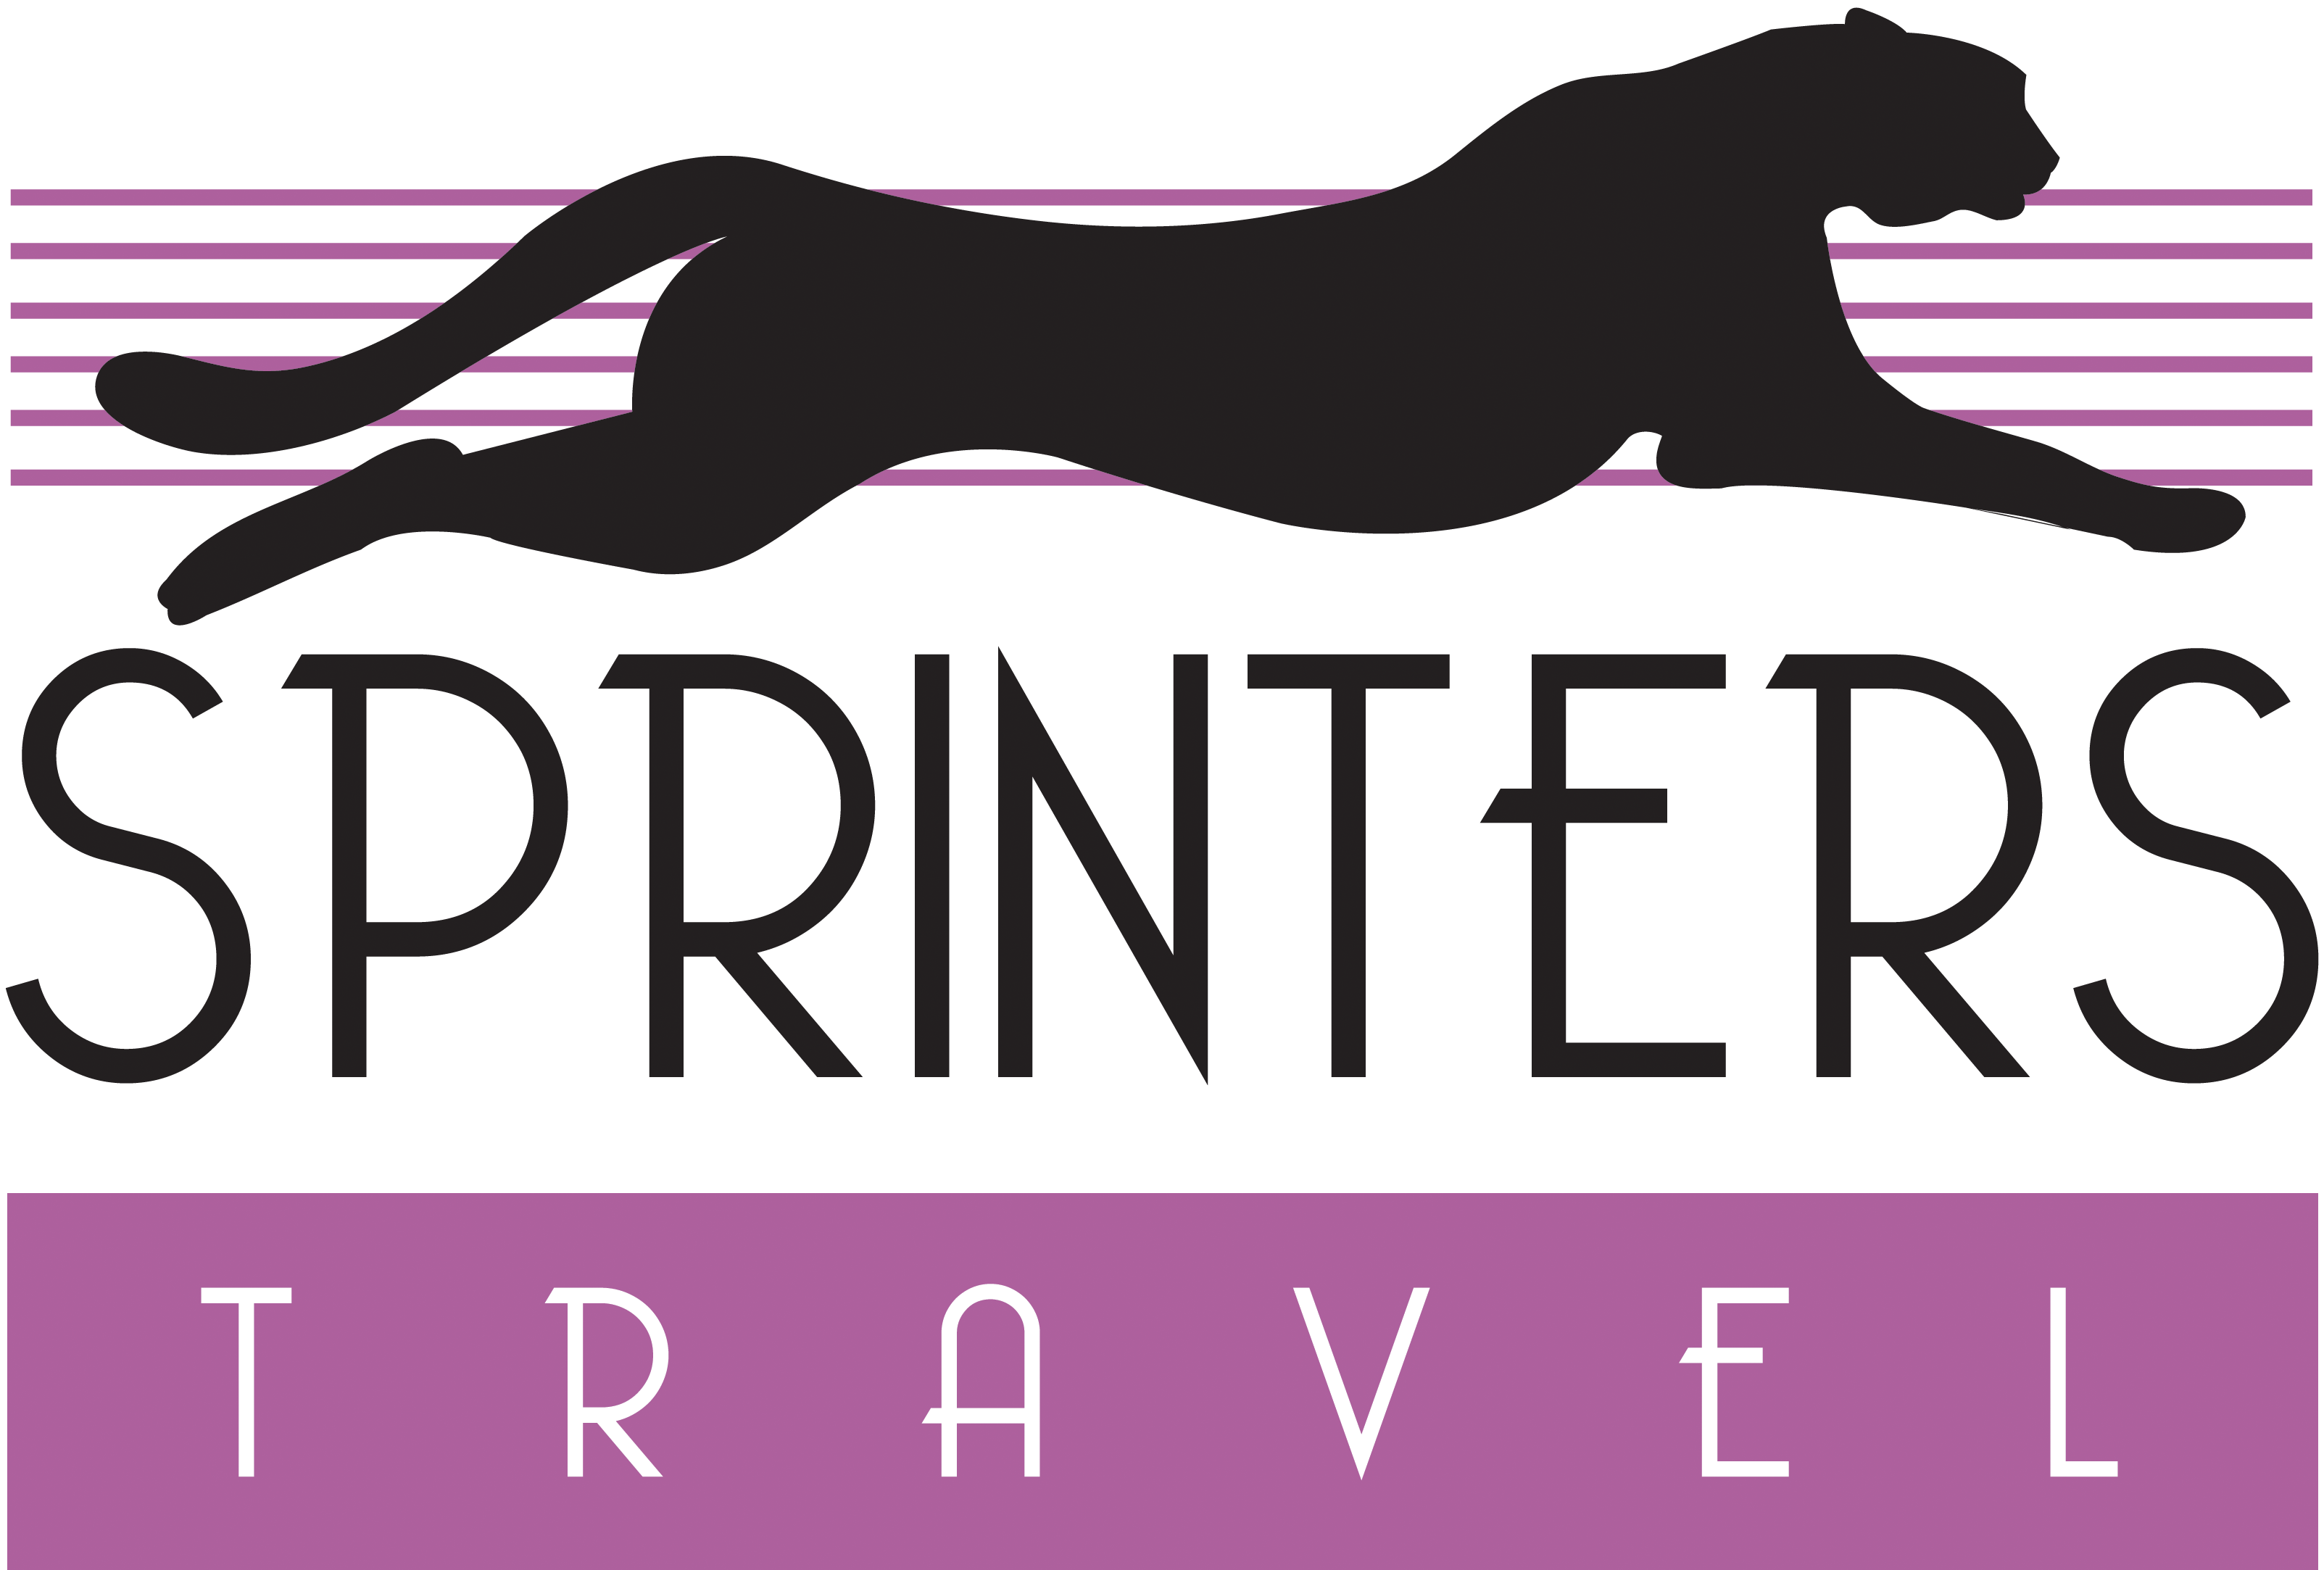 Sprinters Travel | Viviane, Author at Sprinters Travel - Page 2 of 3